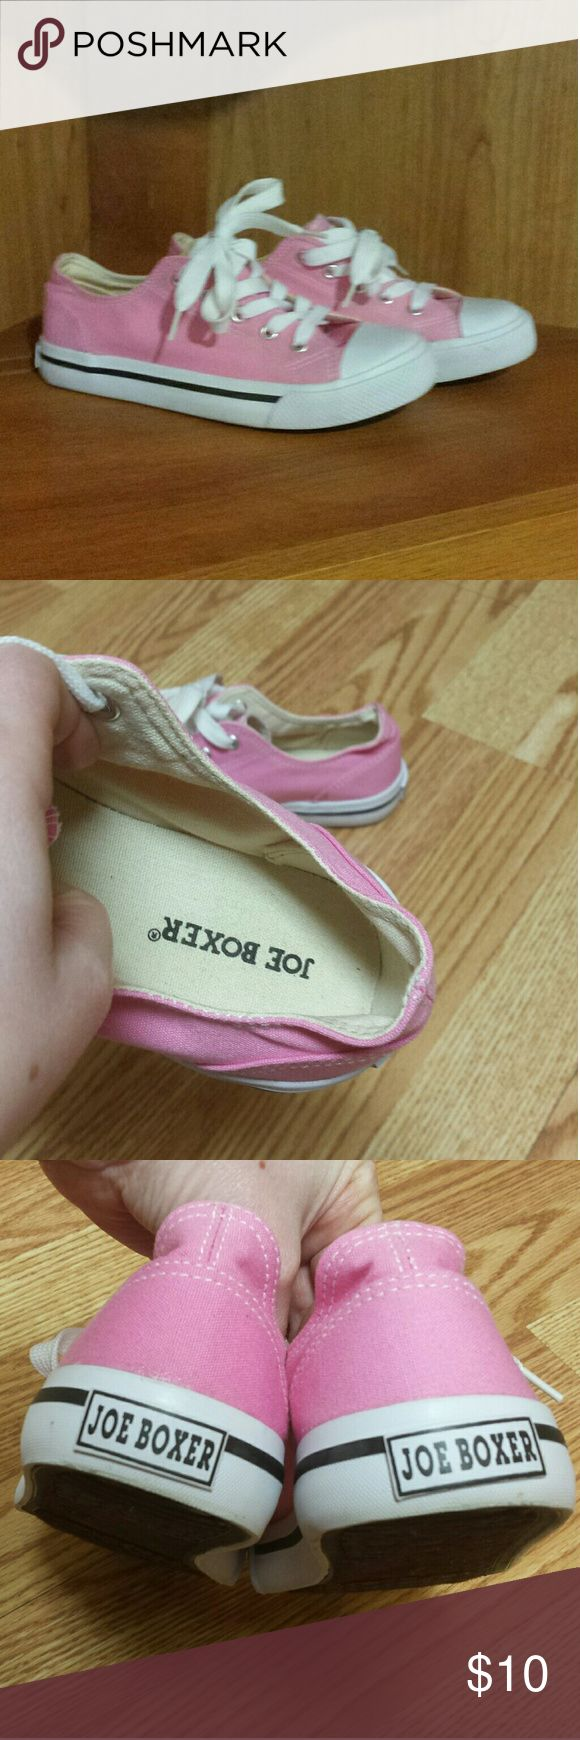 Joe Boxer pink converse like shoe's Joe Boxer pink converse like shoe's. Worn once, has few wear spots as shown in pictures. Kids size 4m. In great used condition. Joe Boxer  Shoes Sneakers